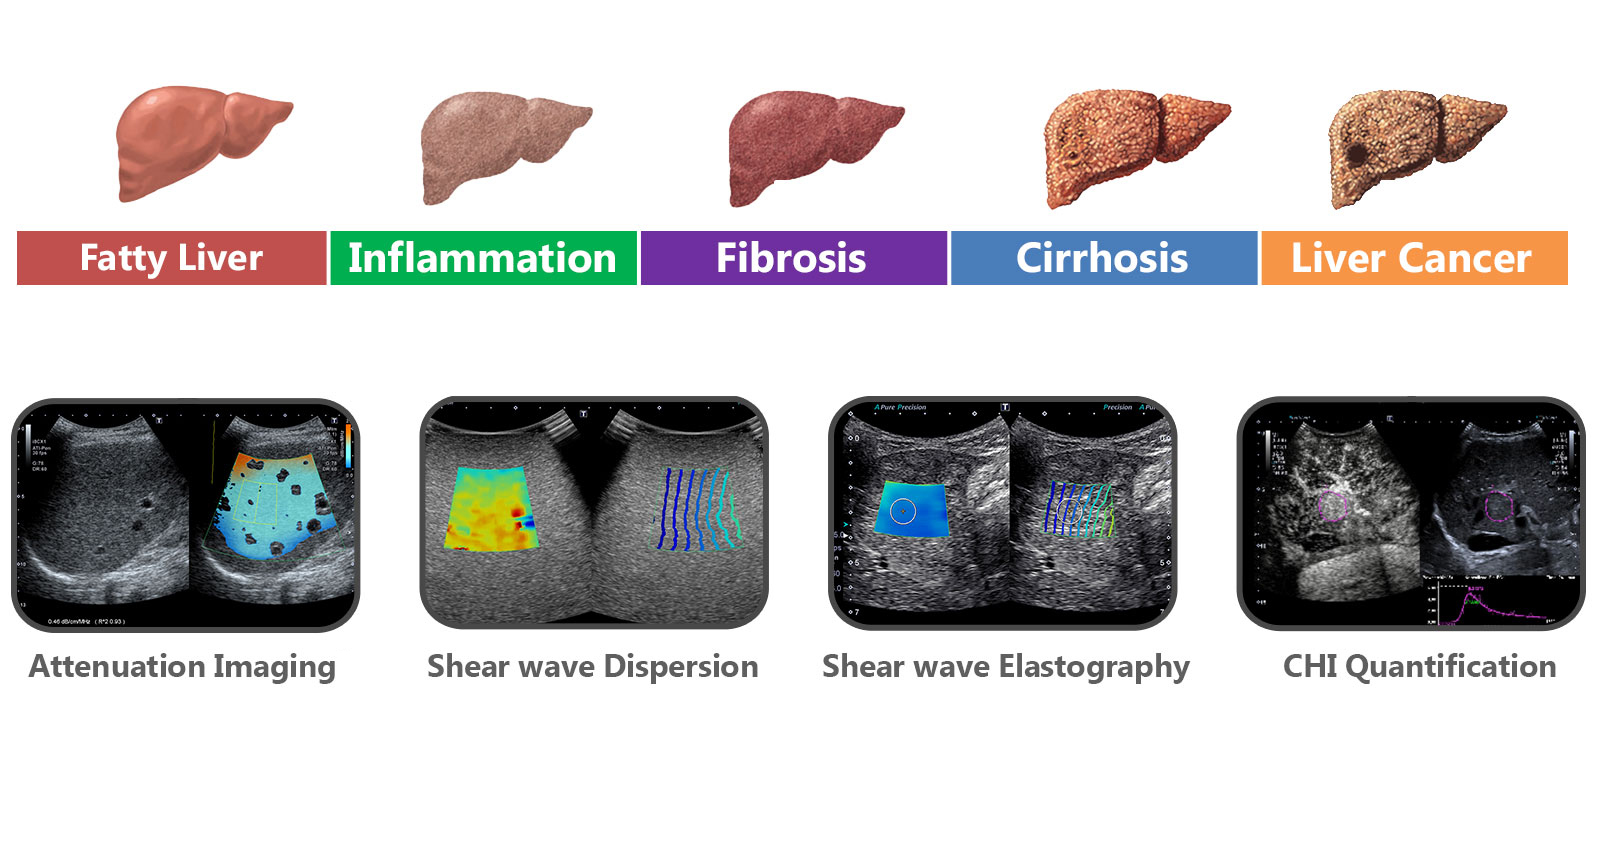 i-series Liver Analysis